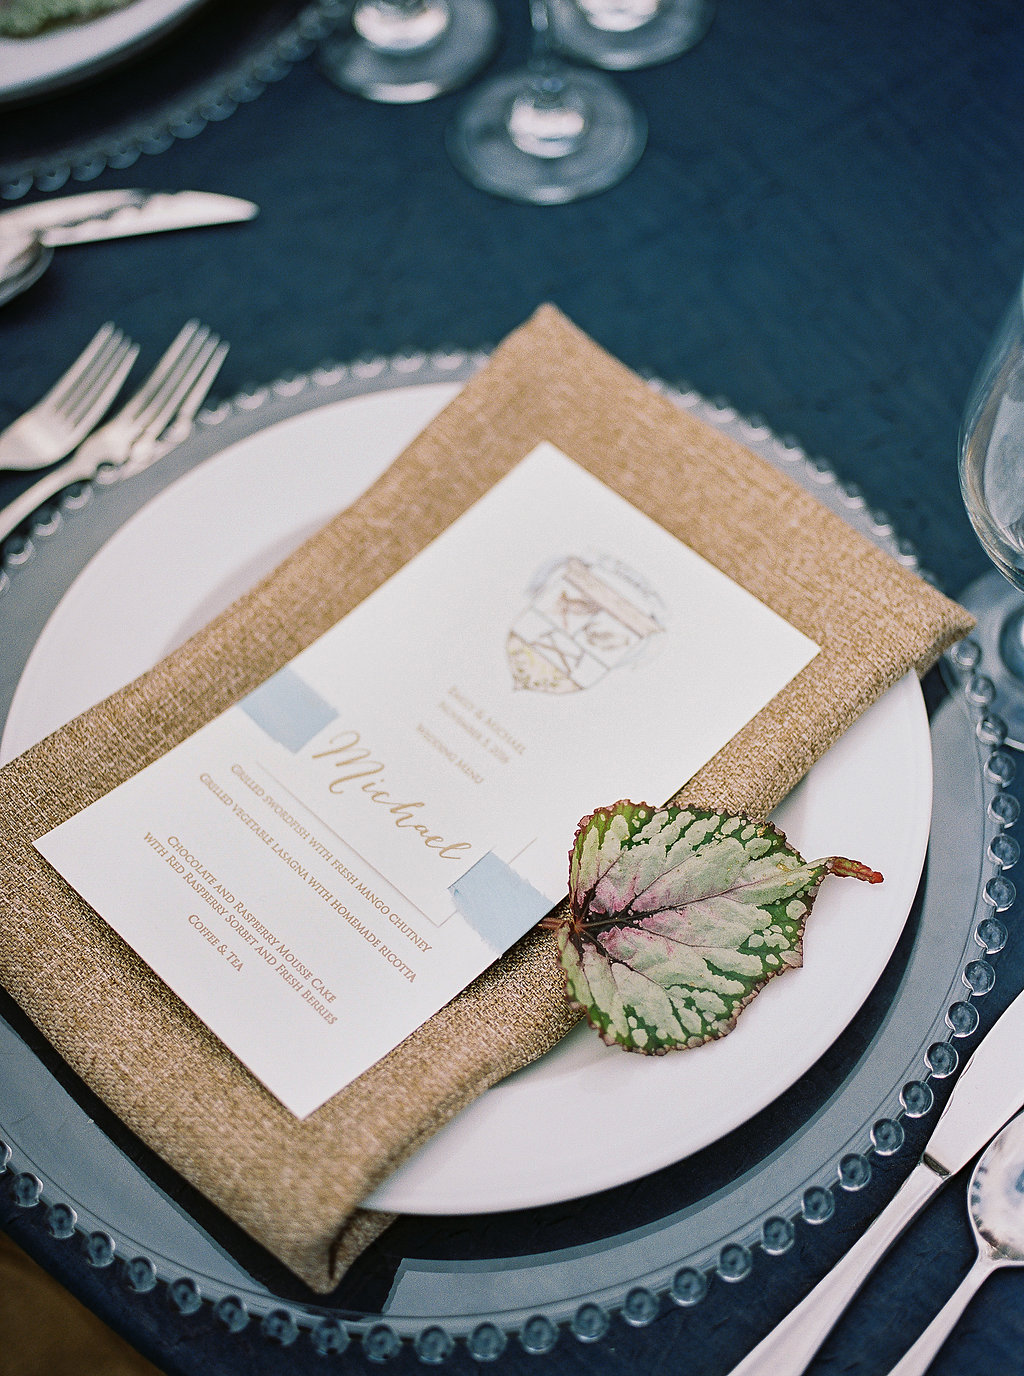 rustic wedding tablescapes - photo by Alexandra Elise Photography http://ruffledblog.com/cobalt-and-amber-wedding-inspiration